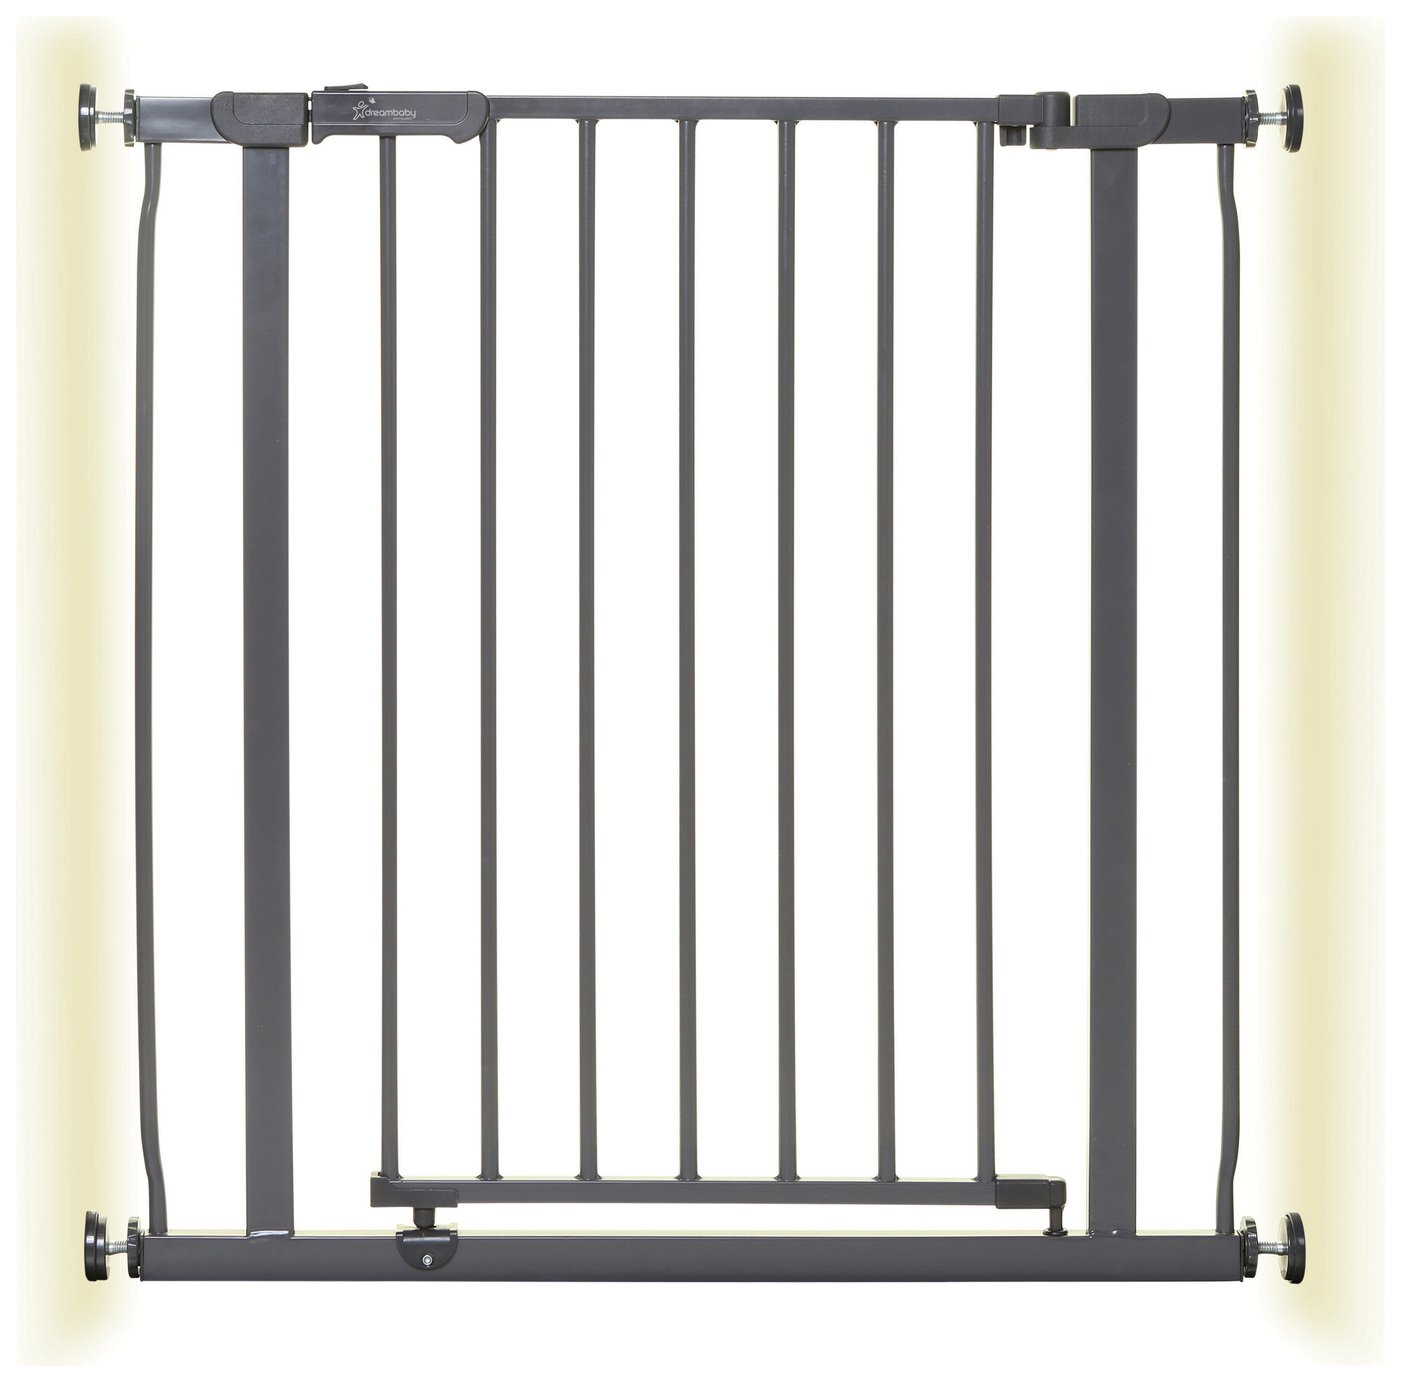 Dreambaby Ava Pressure Fit Safety Gate - Grey (75-82cm)